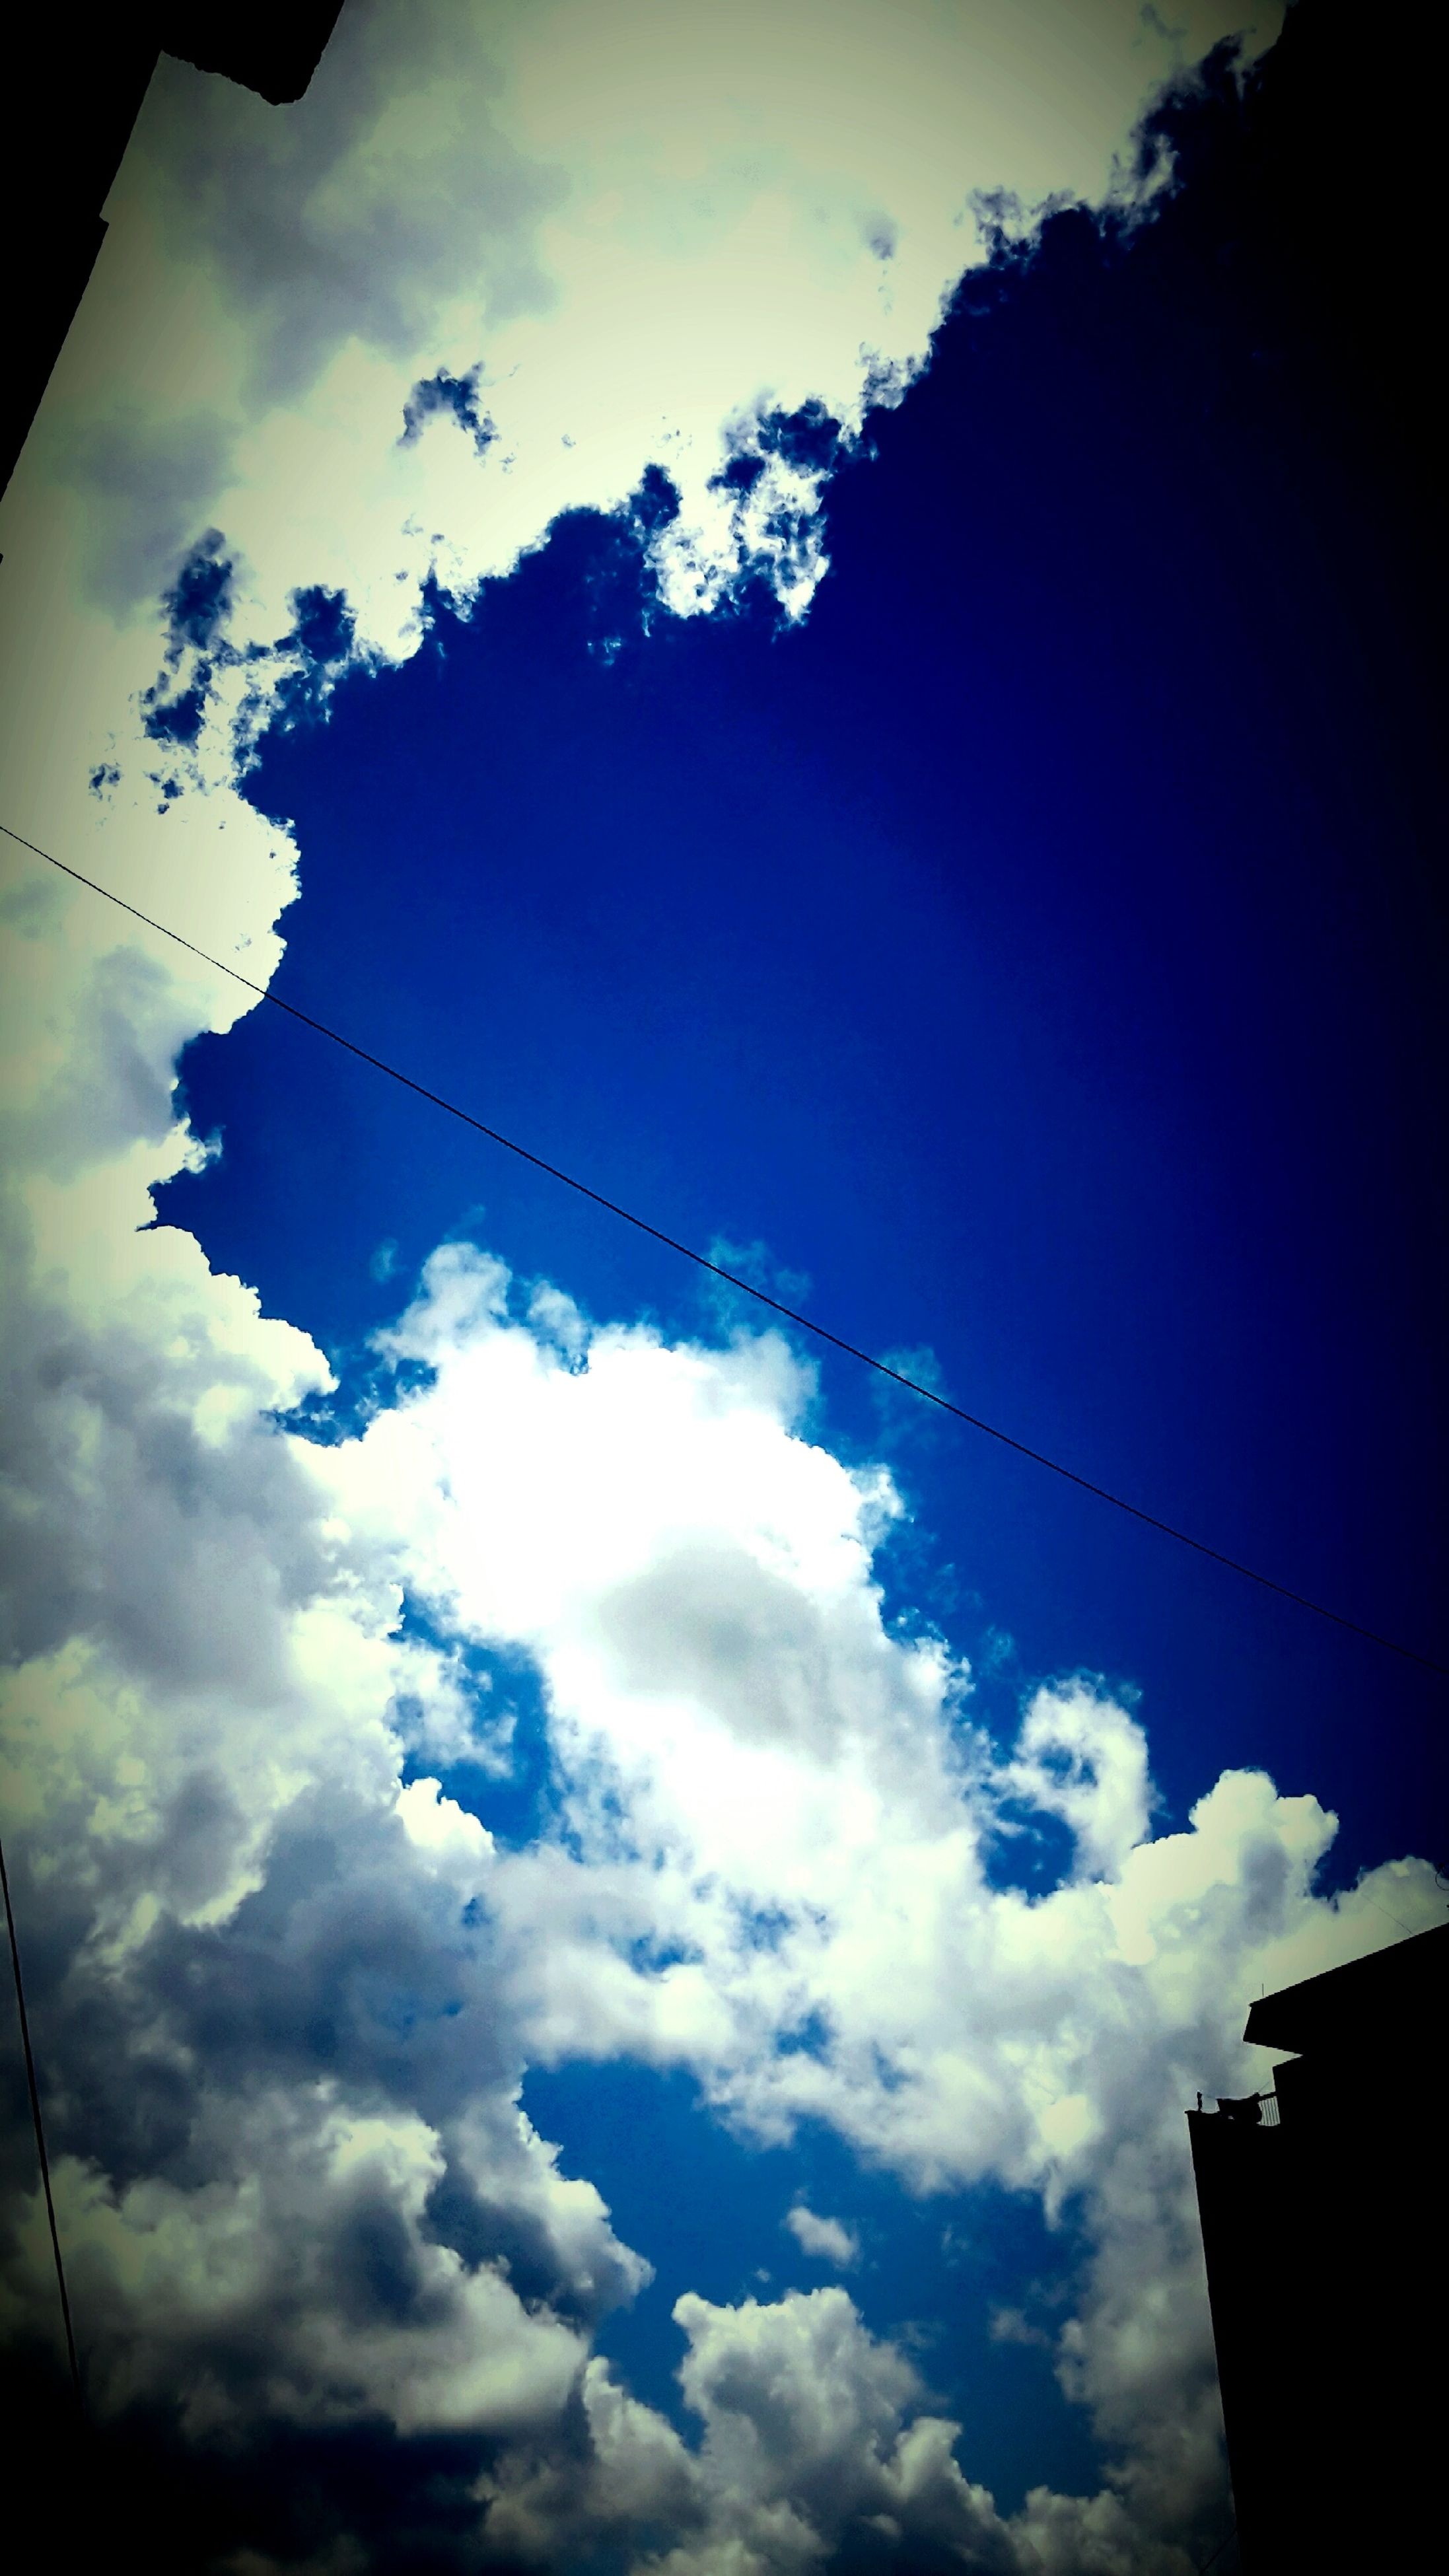 low angle view, sky, cloud - sky, cloudy, silhouette, power line, cloud, cable, nature, beauty in nature, weather, electricity, scenics, dusk, outdoors, tranquility, high section, built structure, overcast, no people